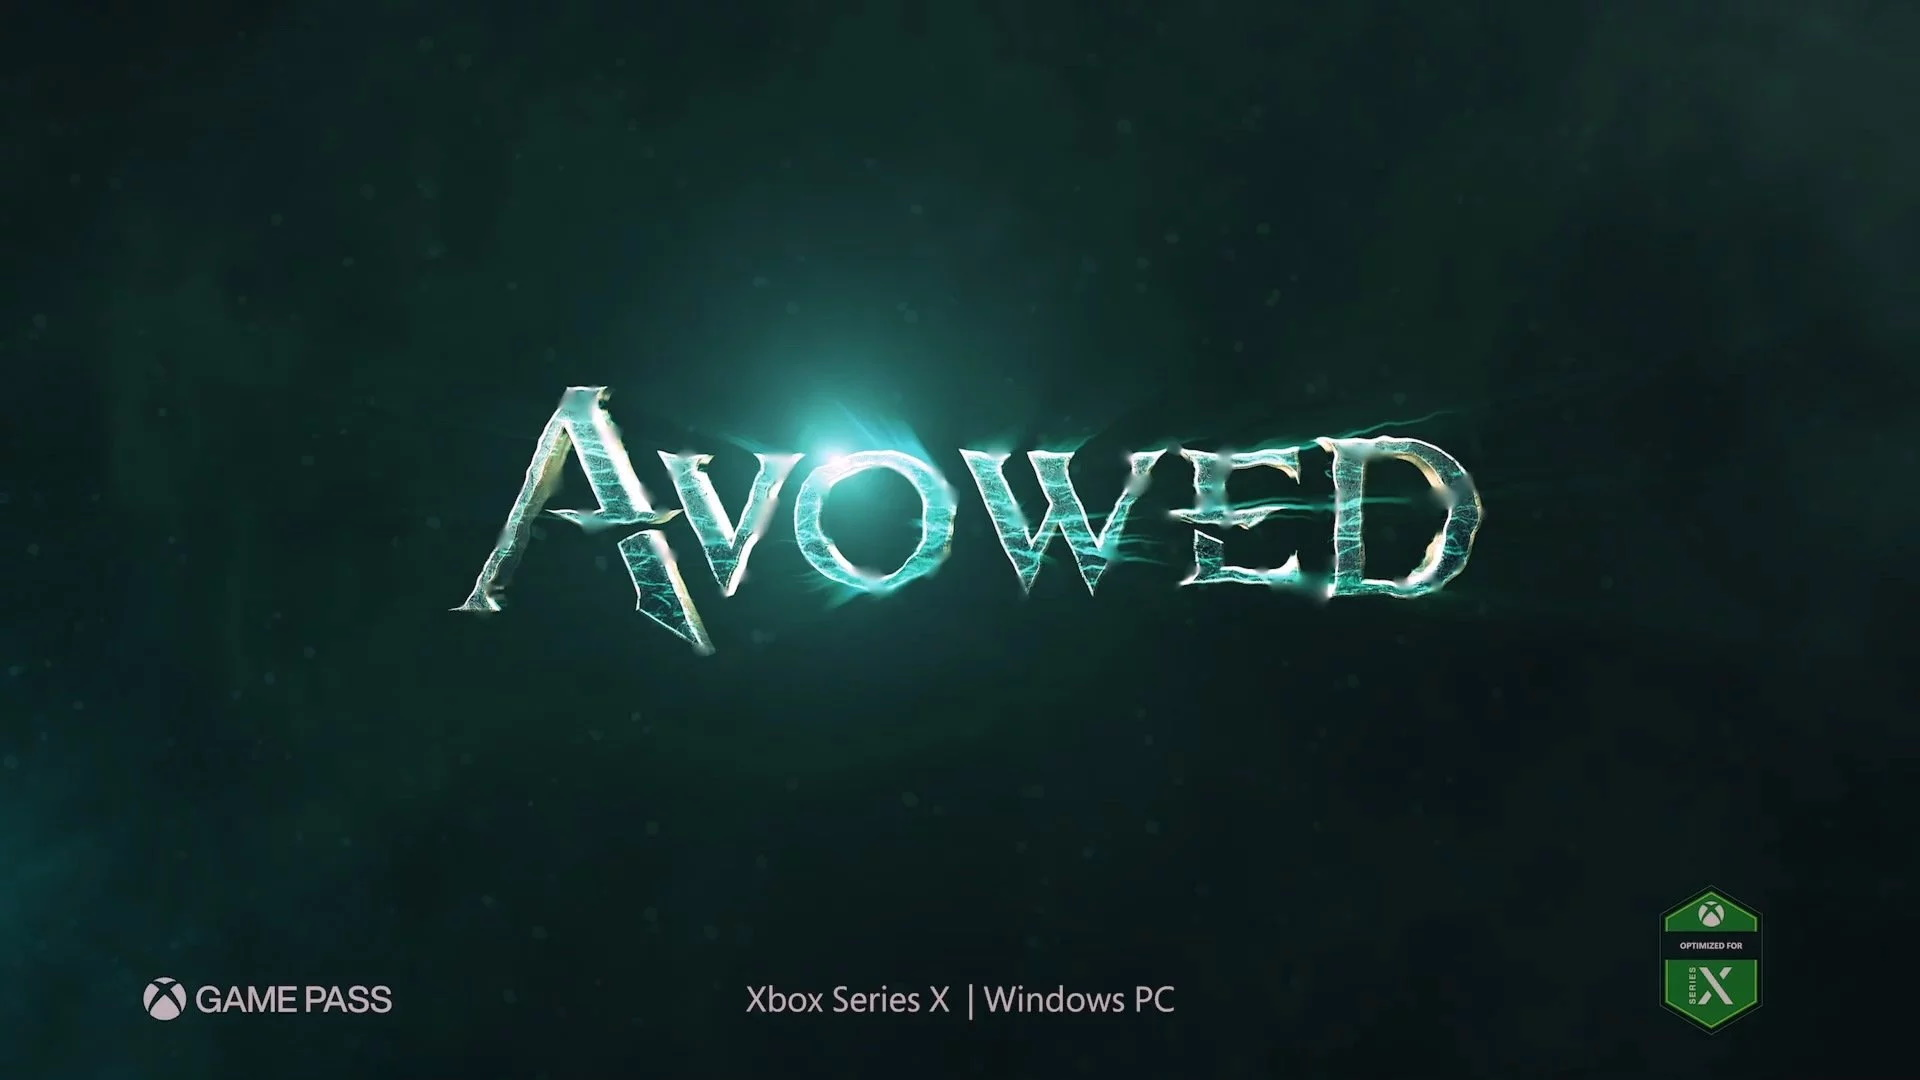 avowed-rpg-by-outer-worlds-obsidian-announced.jpg